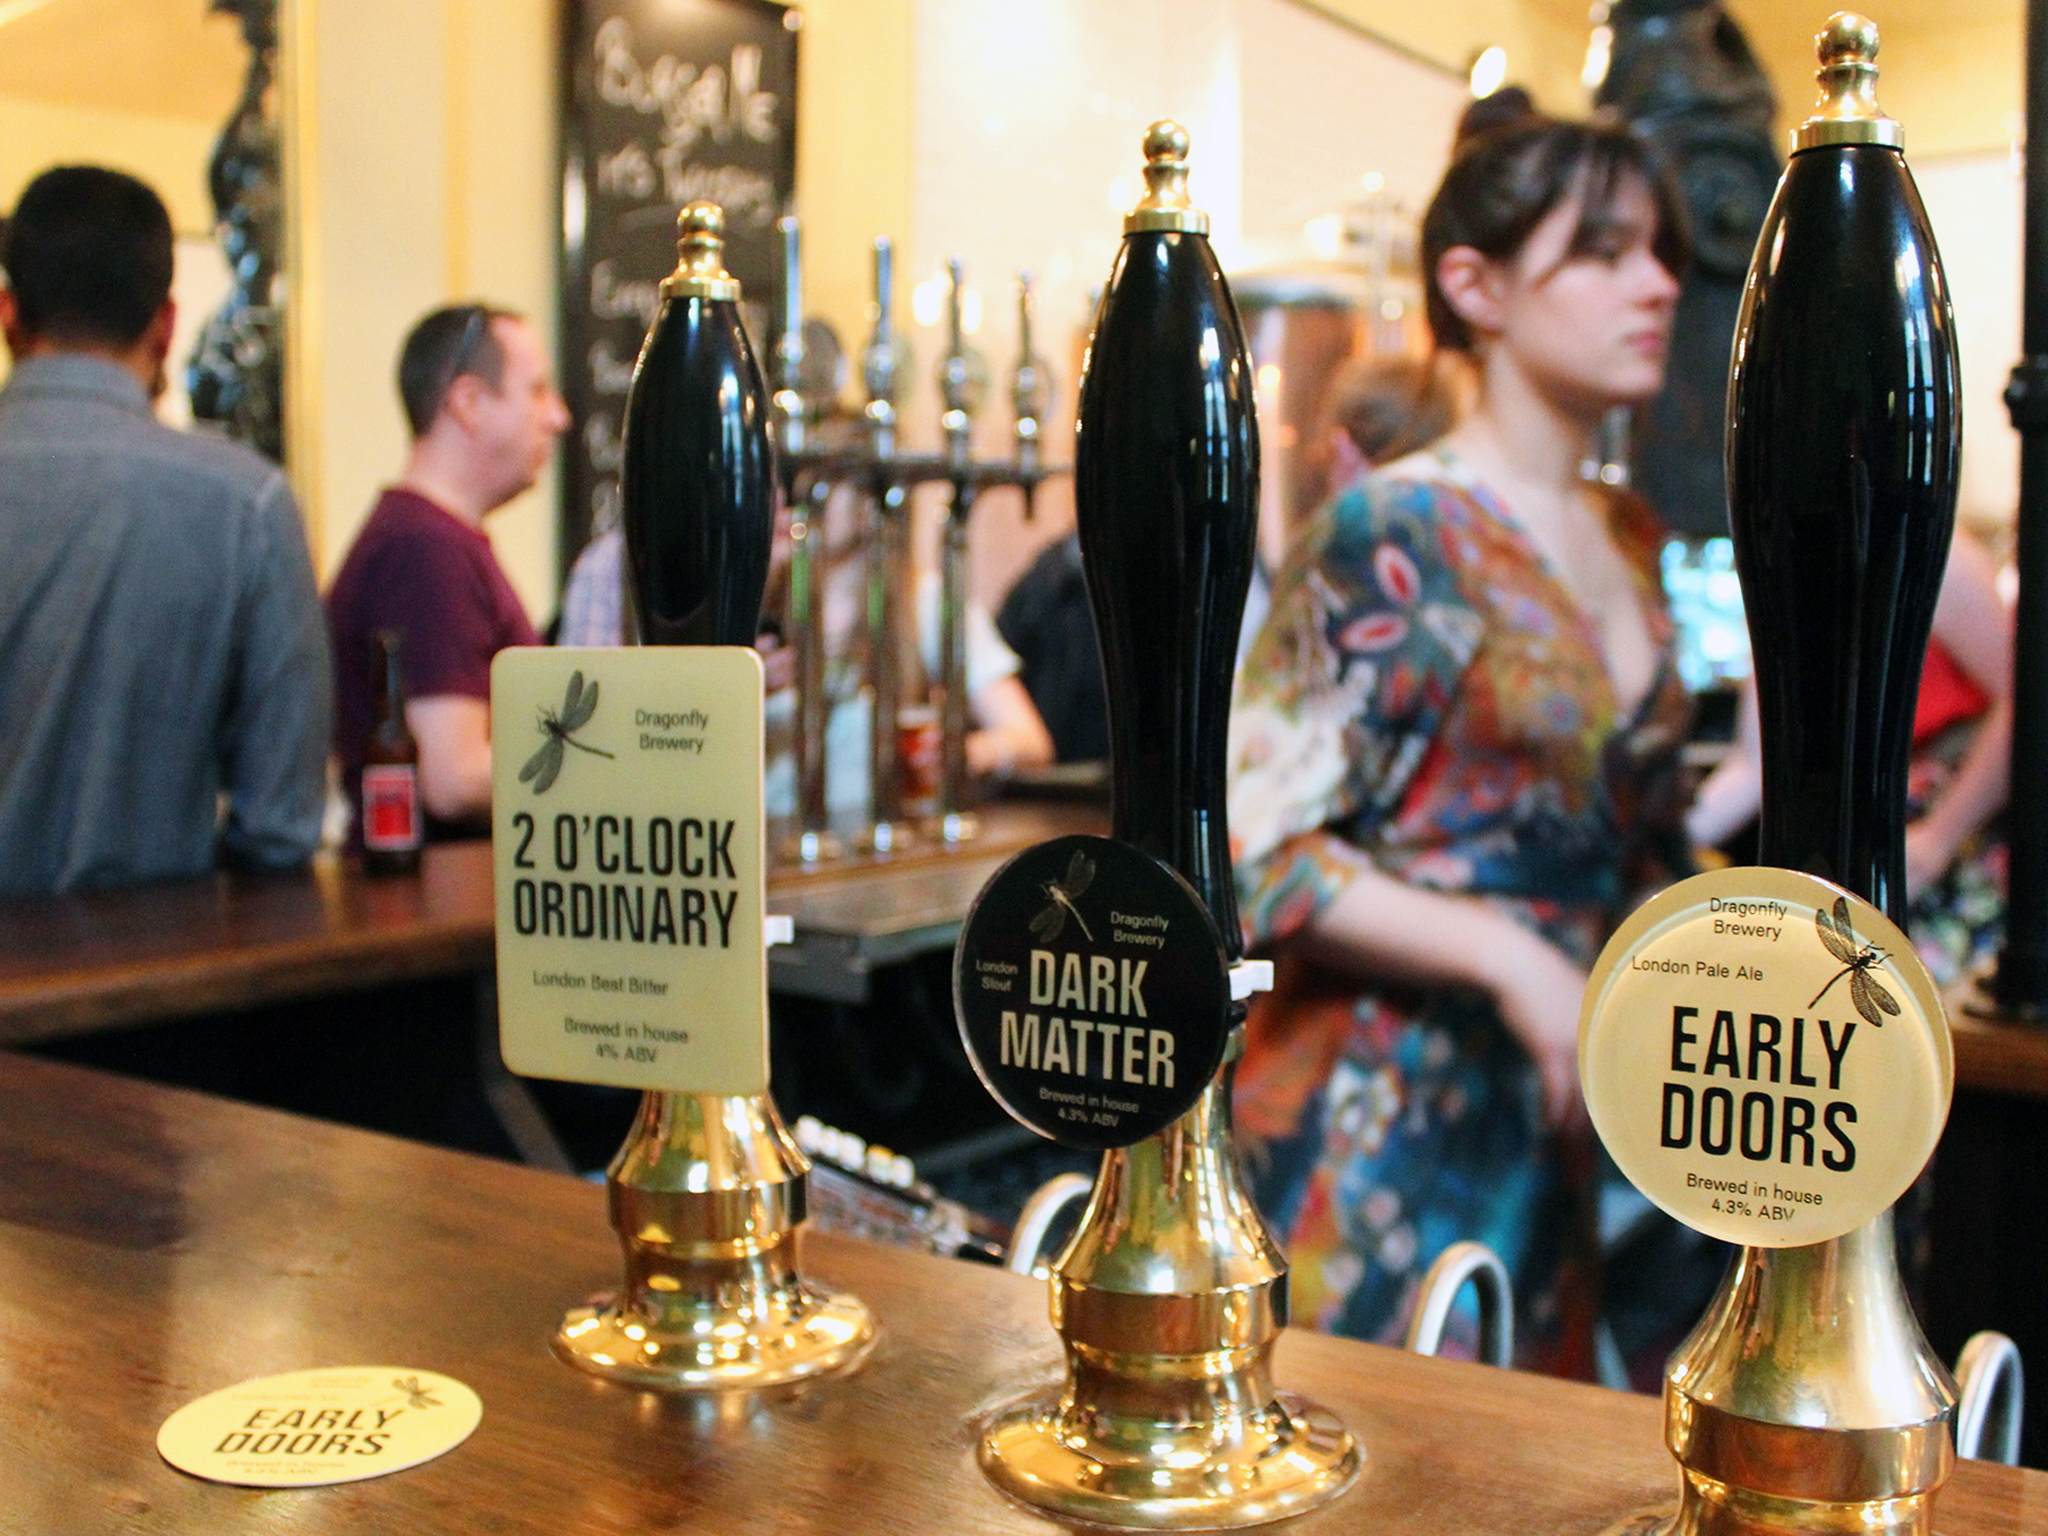 Dragonfly Brewery at The George & Dragon